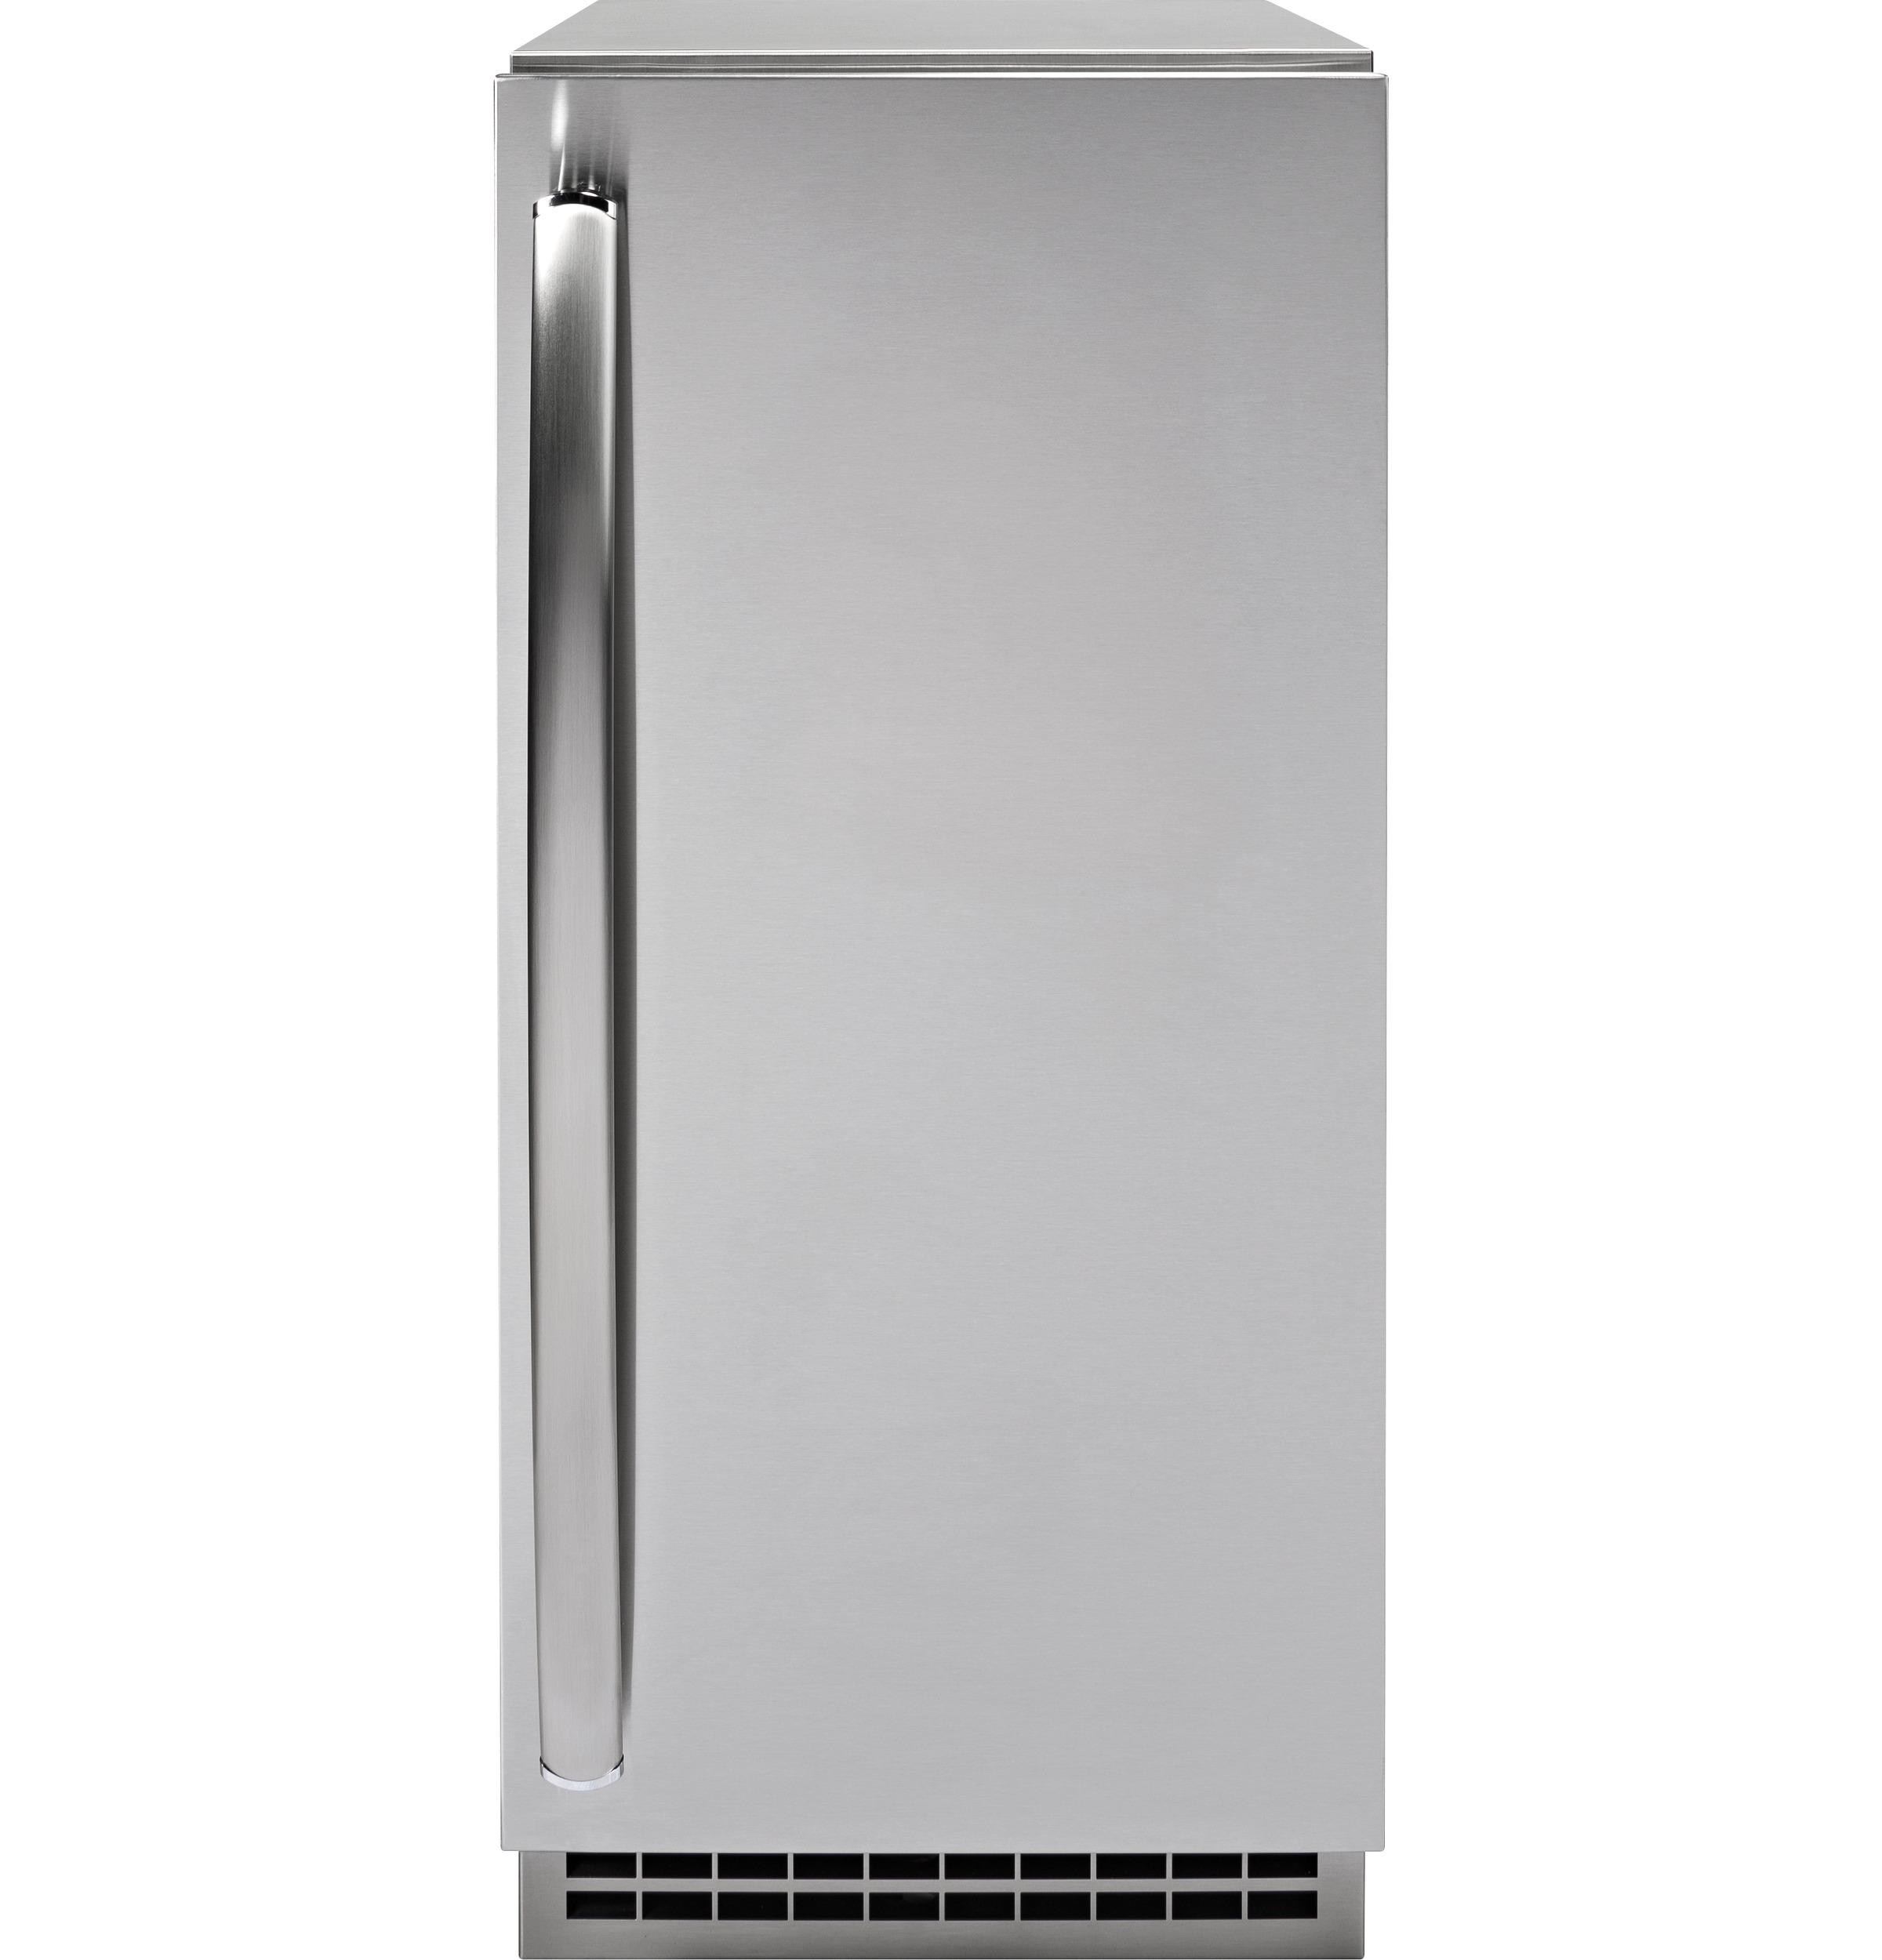 GE Profile Series Stainless Steel Ice Maker Door Kit (door panel and handle only)